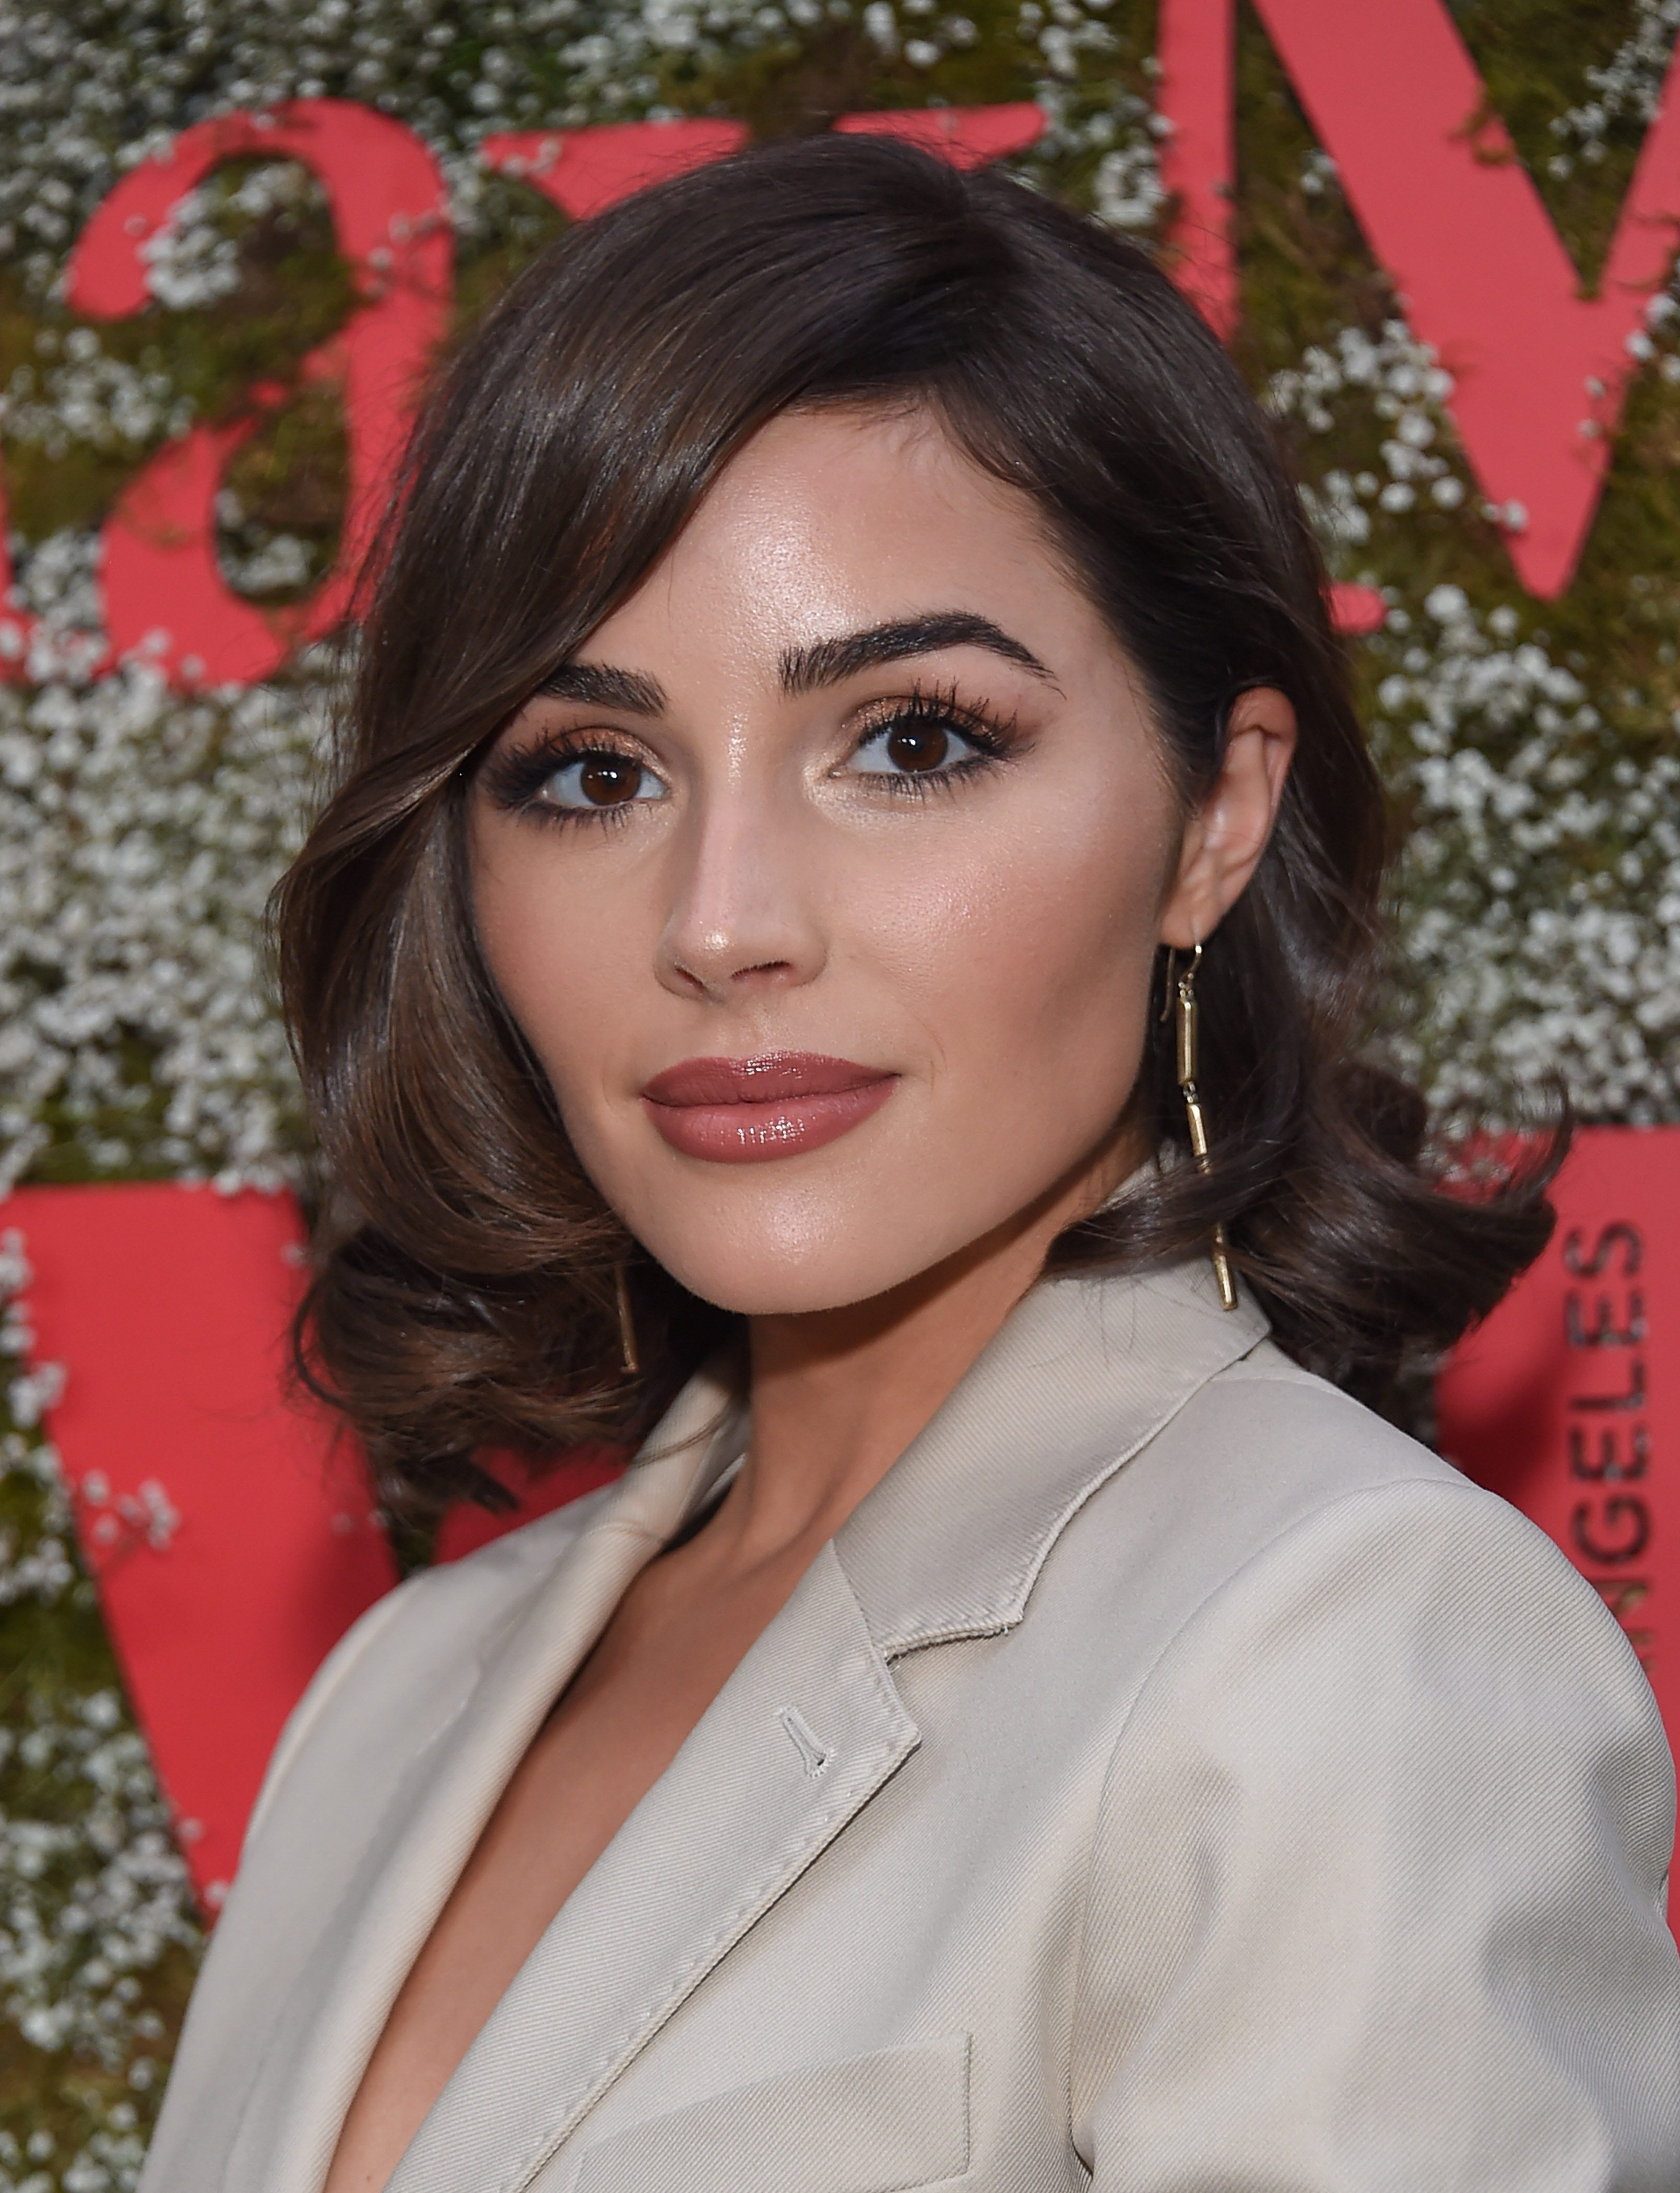 Olivia Culpo's Side-Parted Curls